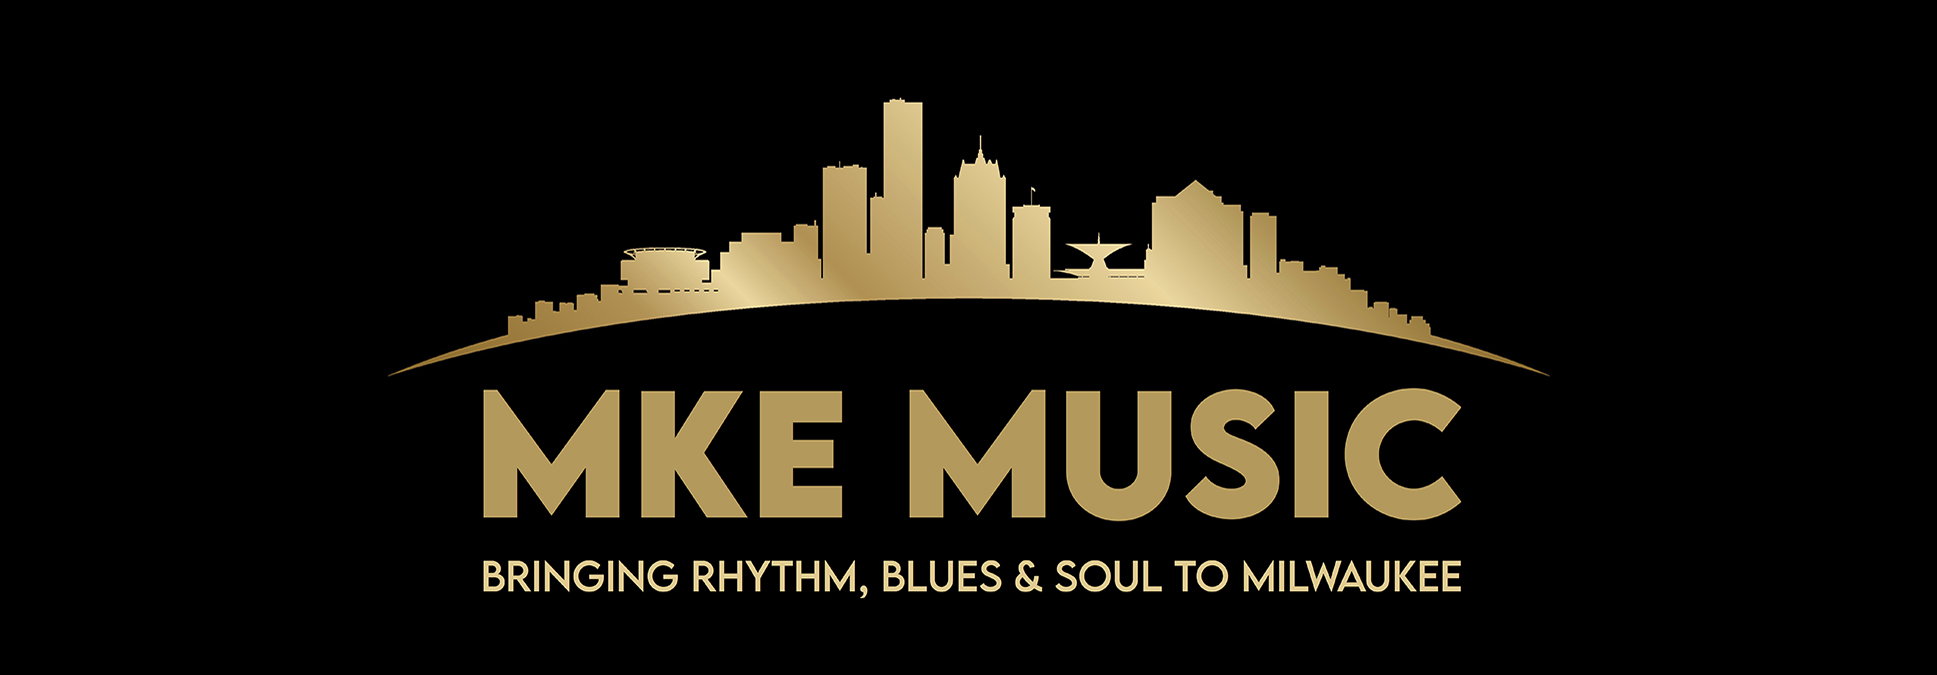 MKE MUSIC at the Marcus Center in Milwaukee